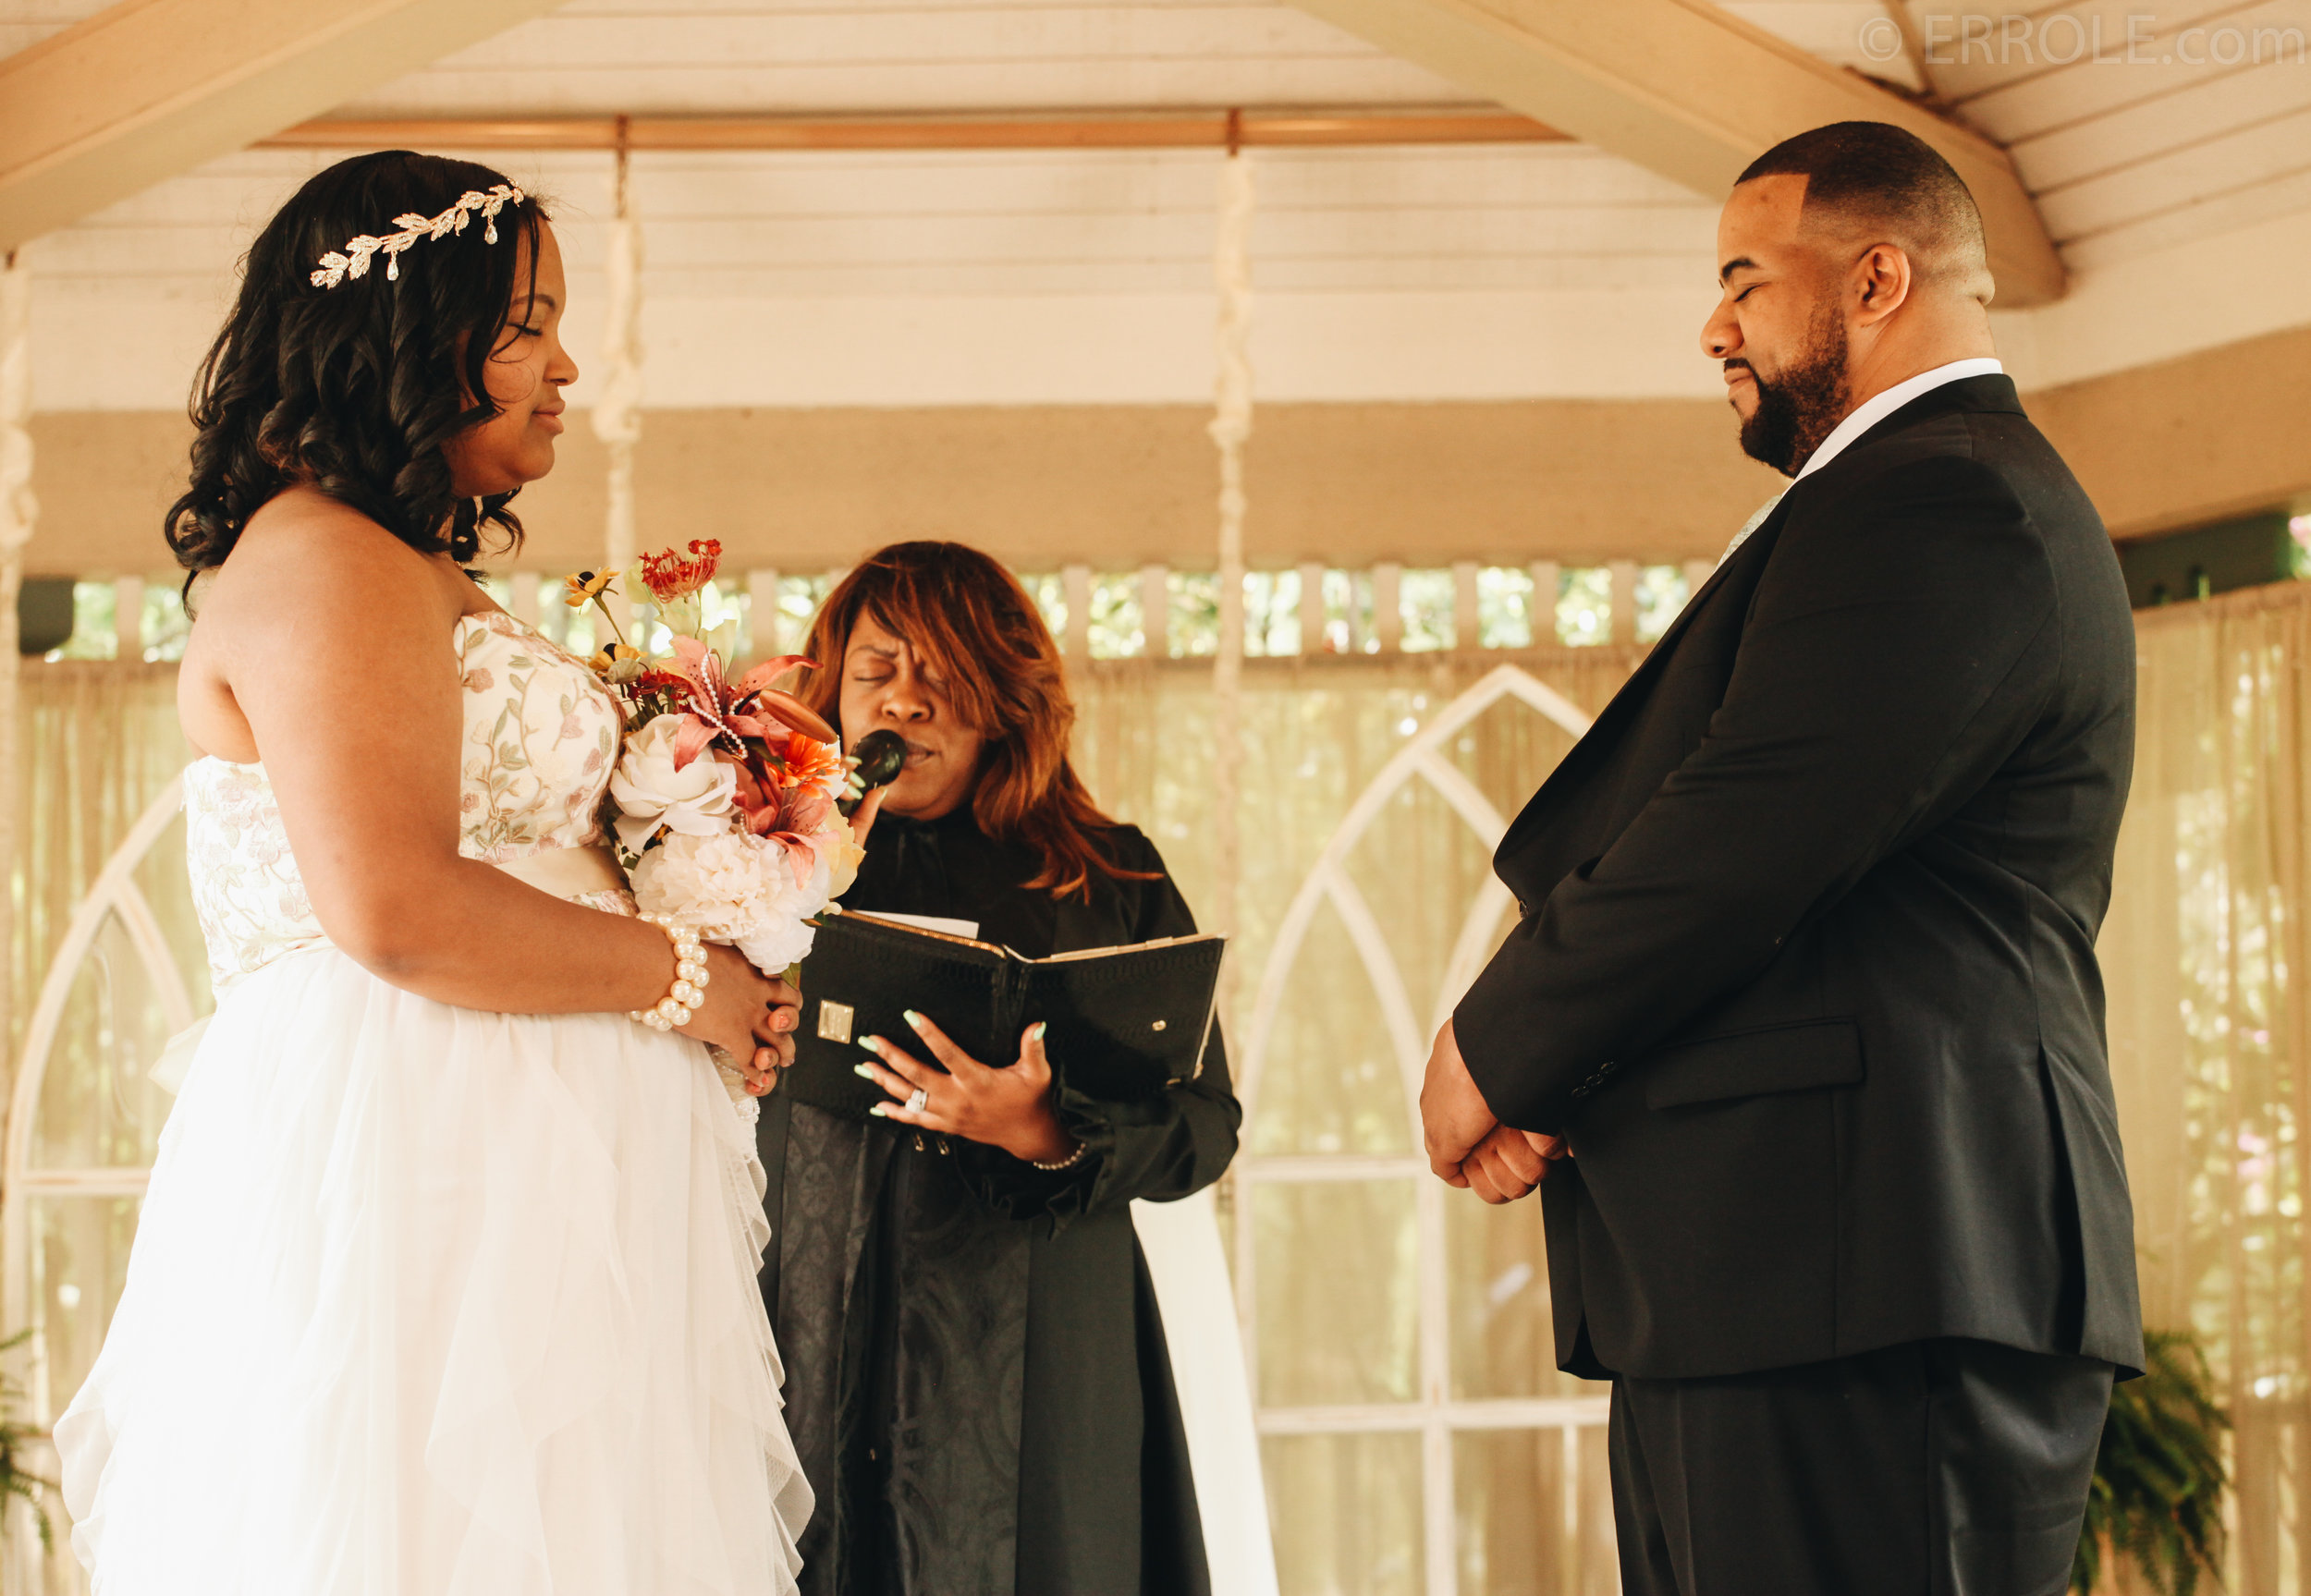 Amber and Malcom wedding